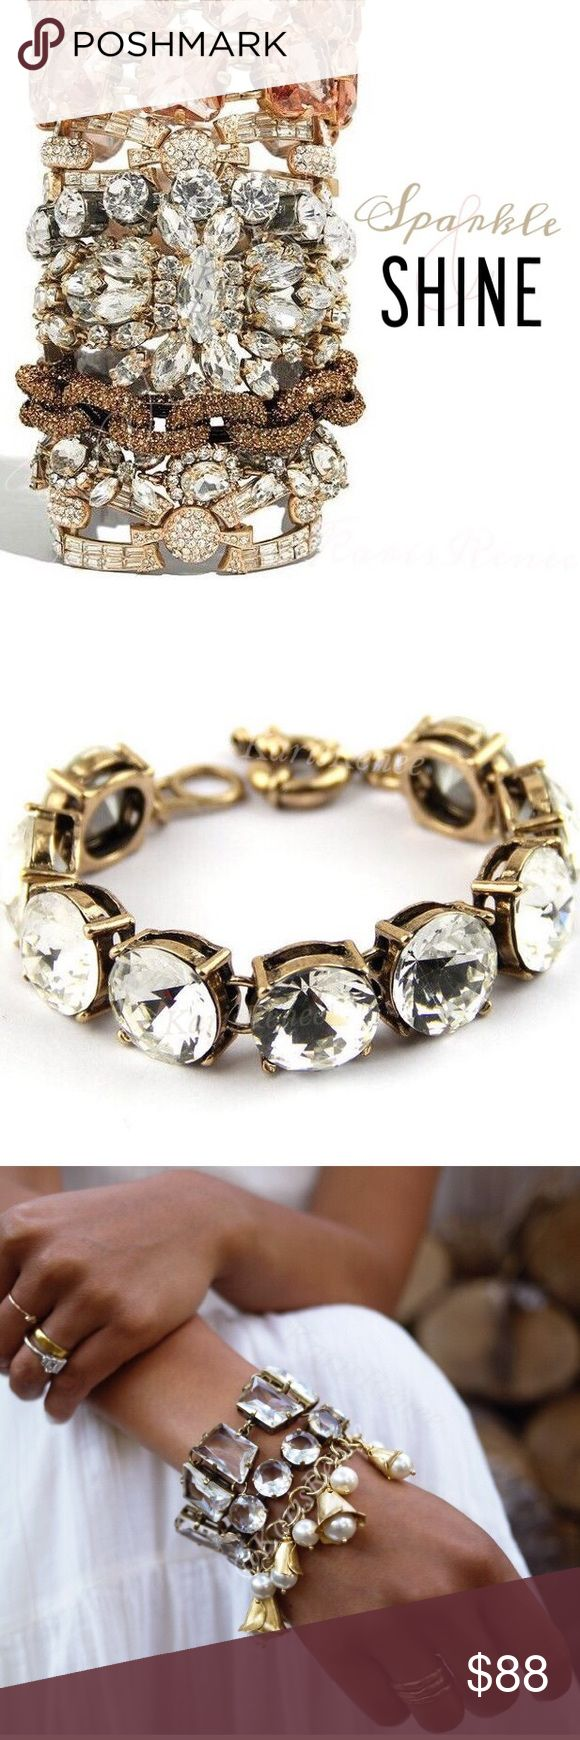 Jewelry | J.Crew Clear Crystal bauble bracelet Clear round stone bracelet // brand new // excellent condition // never worn // classic jcrew antique gold base // please ask about other colors! // nwot // I also have sky blue and lemon in this style, I believe! (Those are not from jcrew & would be priced lower w shiny gold base) // Bracelet is one size fits all with adjustable clasp closure & jcrew metal tag + signature crystal stone for authenticity Other xoxo bracelet seen in first & final…